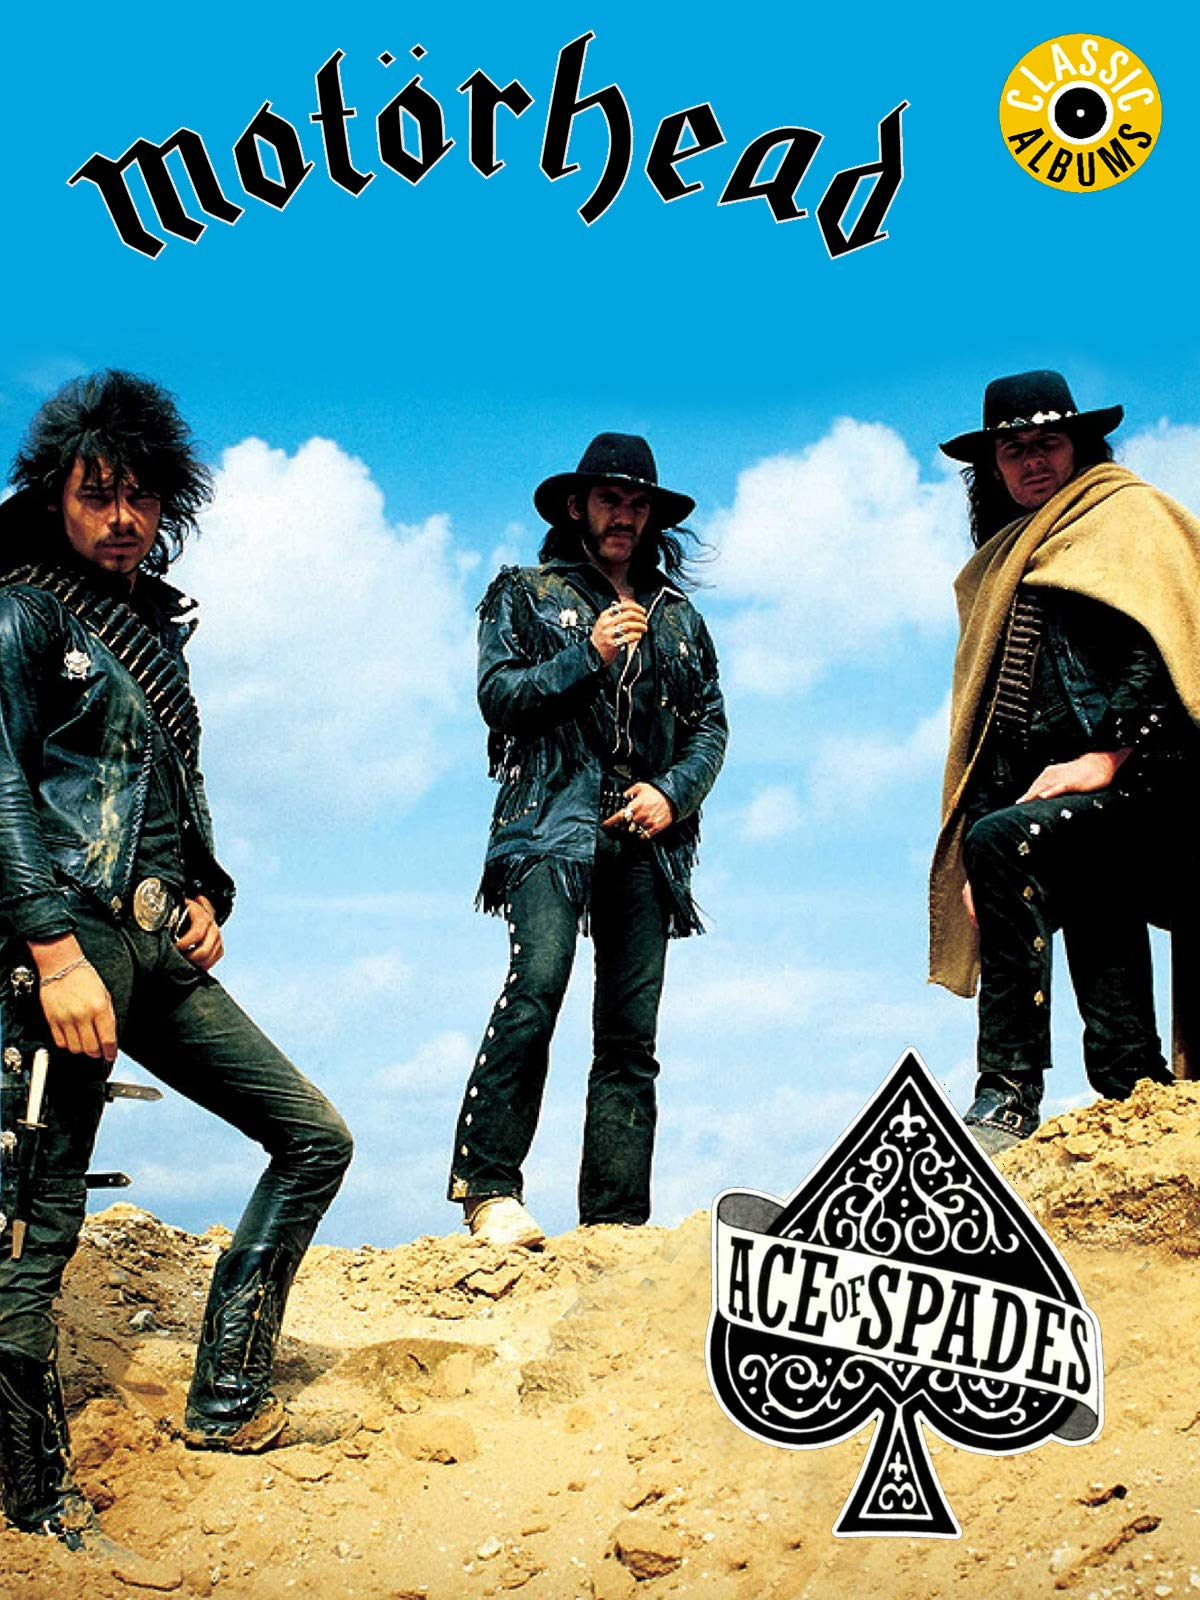 Motörhead - Ace Of Spades (Classic Album) on Amazon Prime Video UK